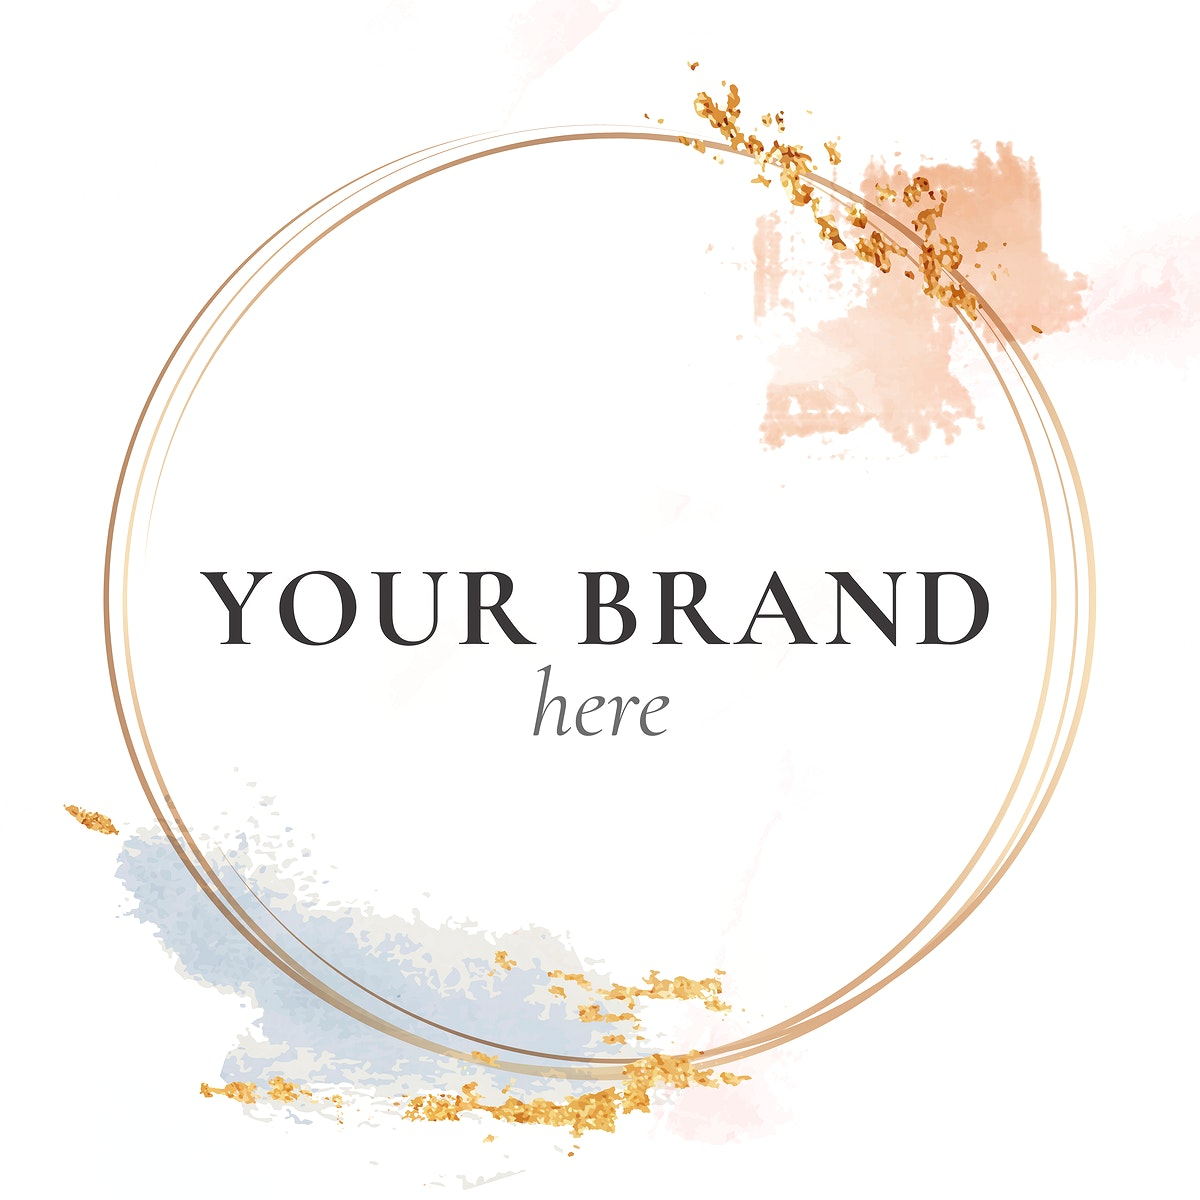 Your Brand here frame mockup vector